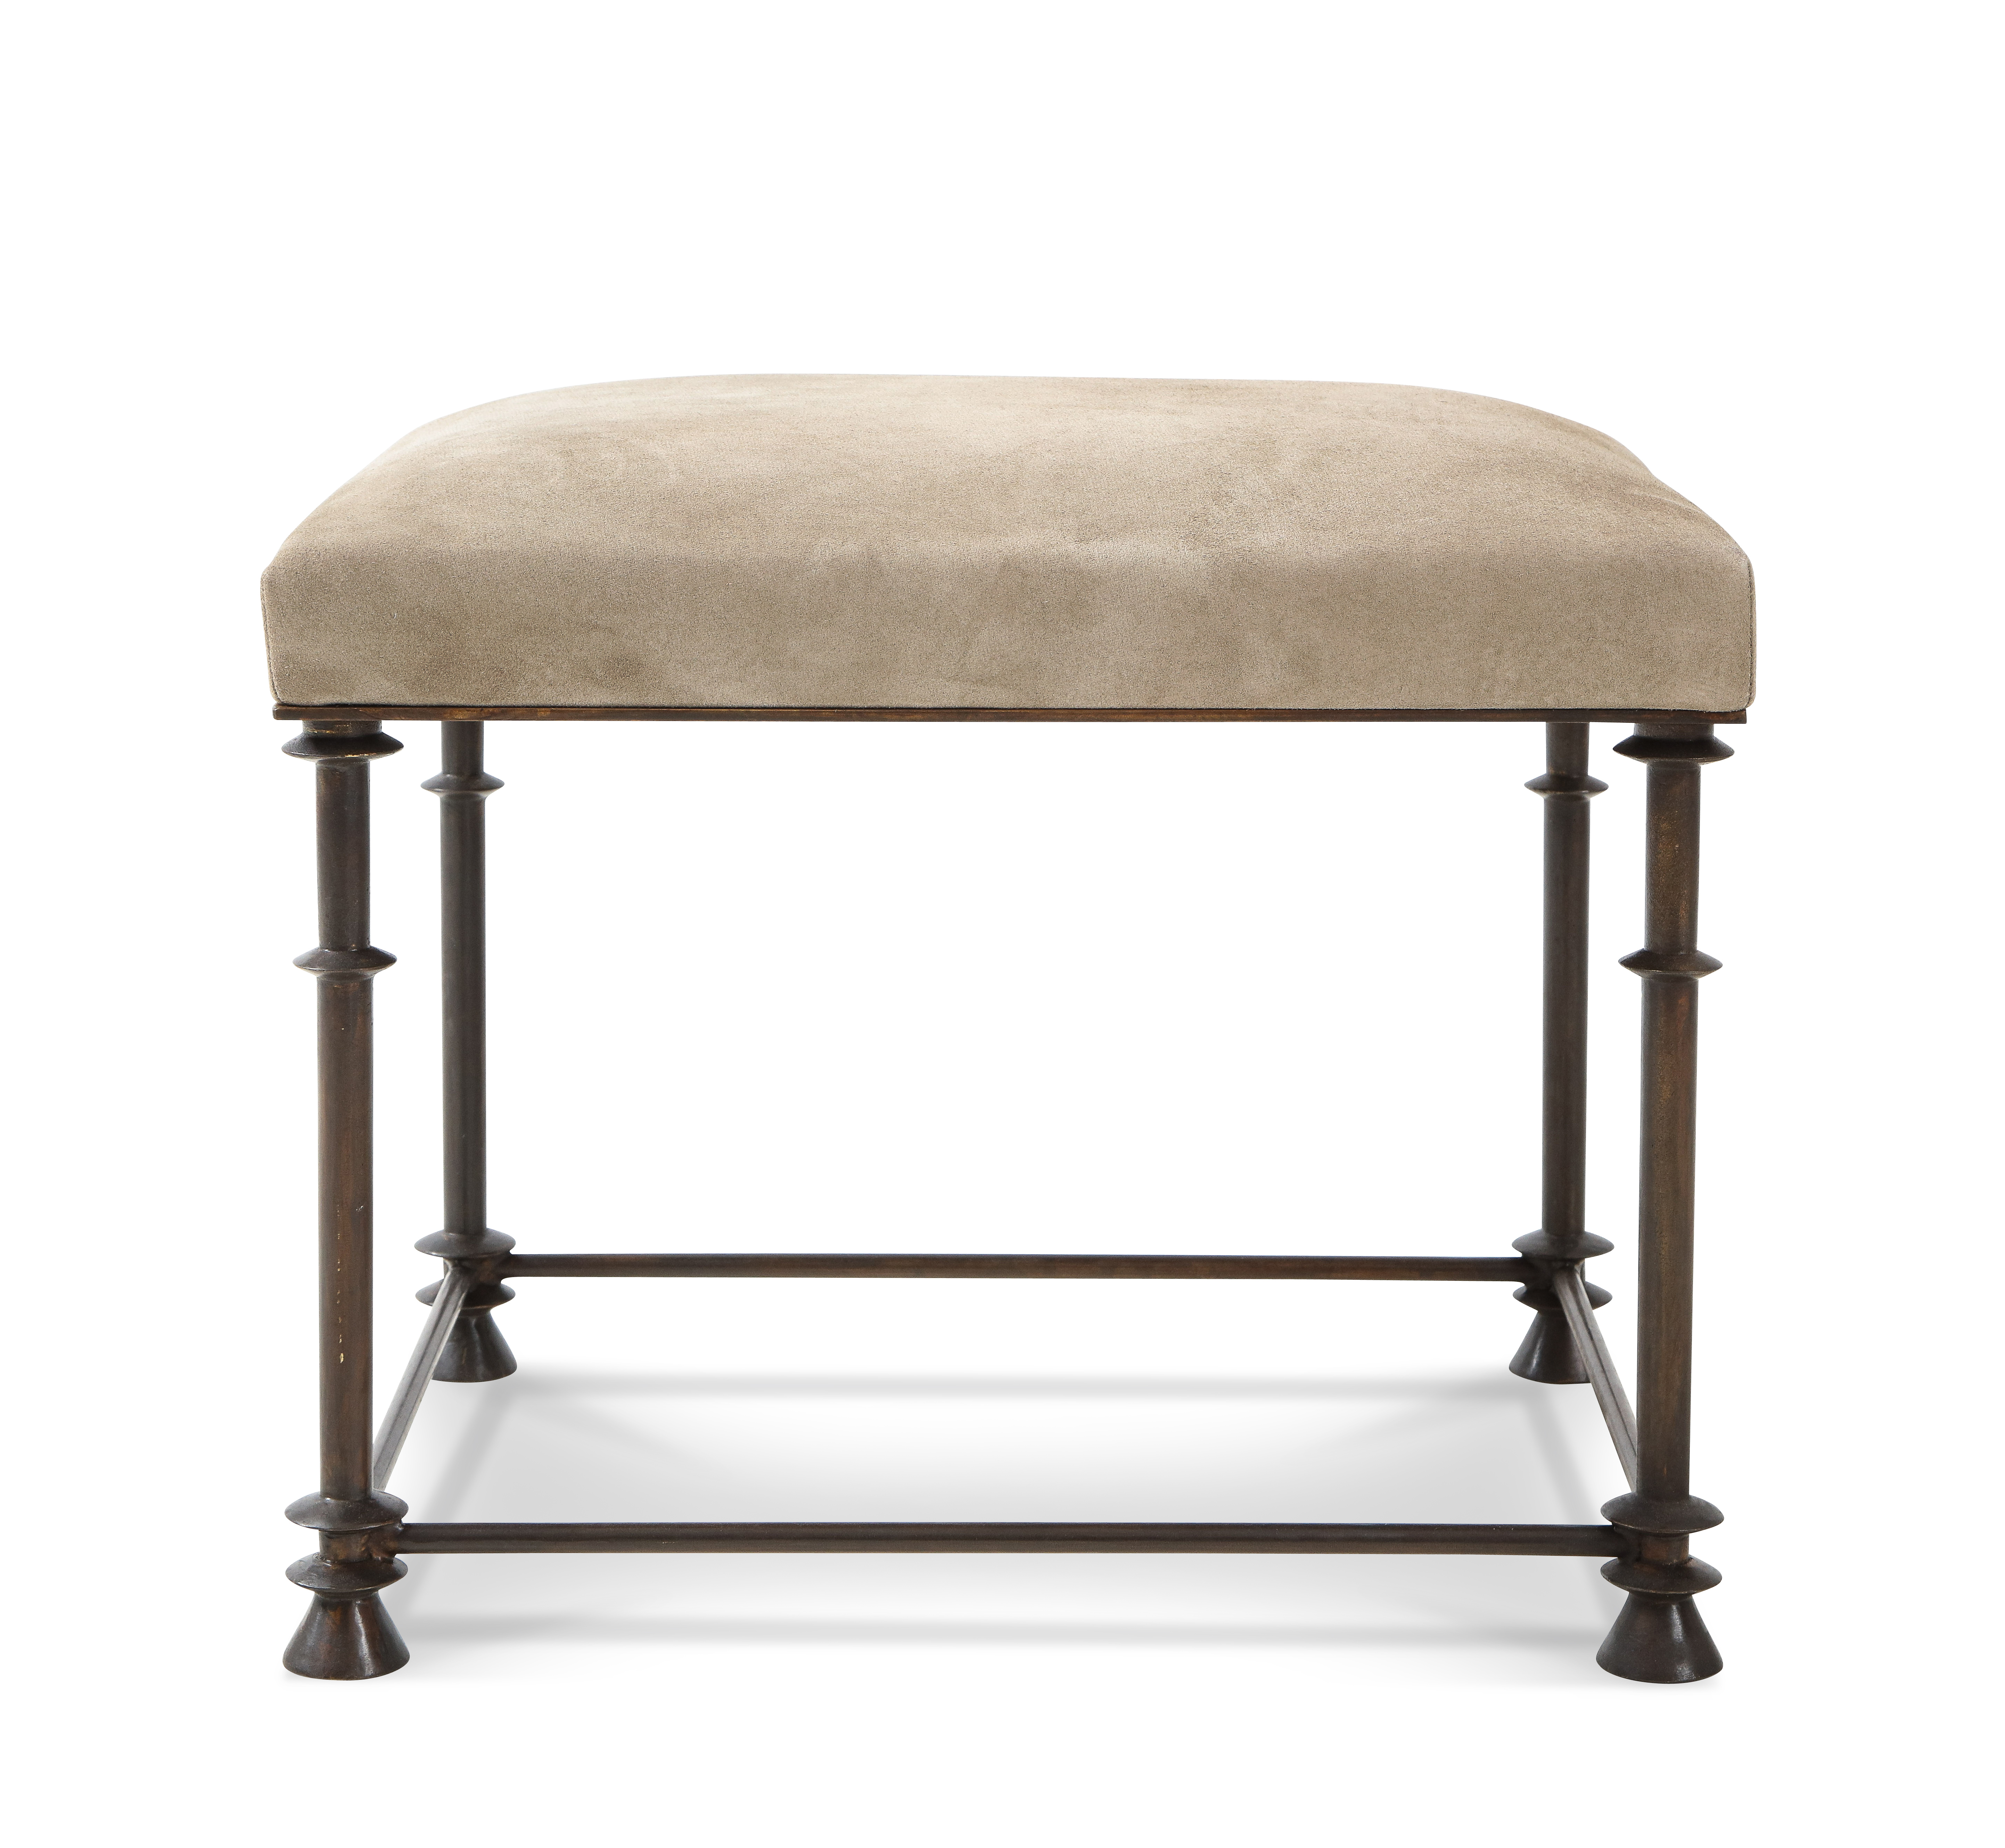 bronze legged stool covered with